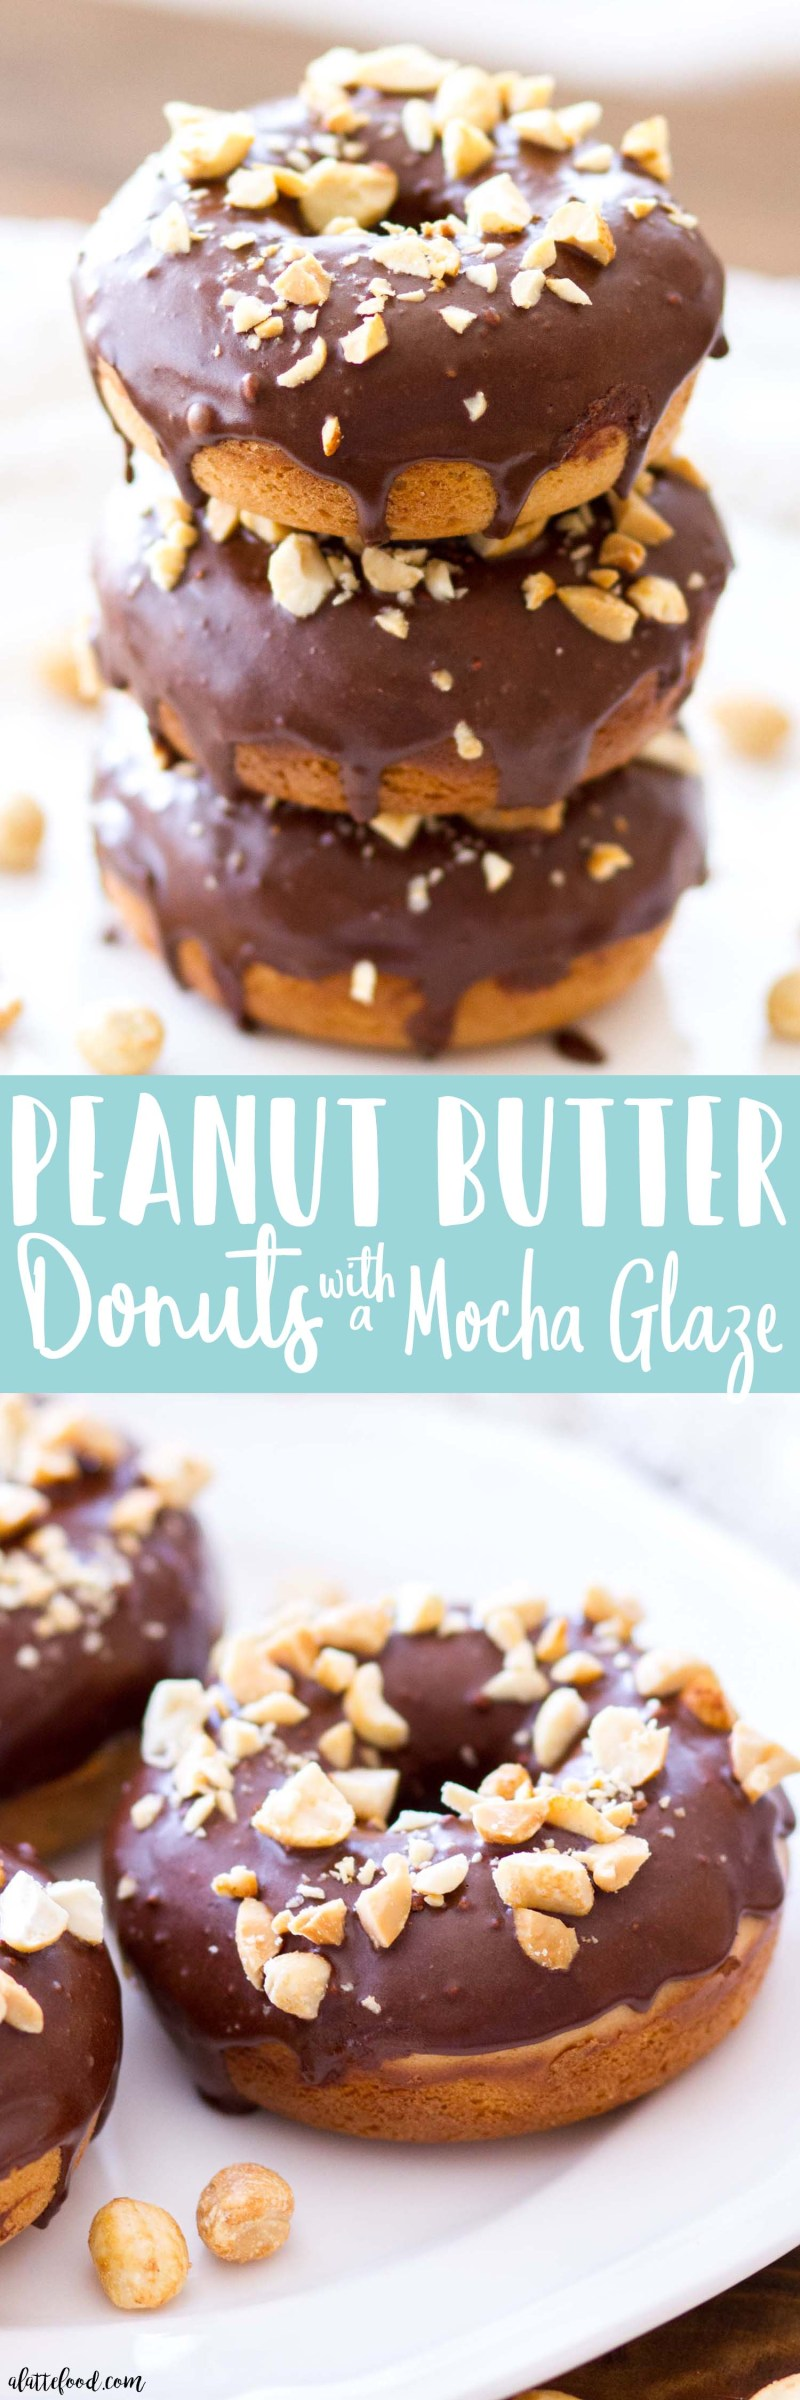 These homemade baked Peanut Butter Donuts are topped with a sweet Mocha Glaze! These homemade donuts are the perfect fall dessert or decadent breakfast, and they are especially perfect when paired with a steaming cup of coffee!